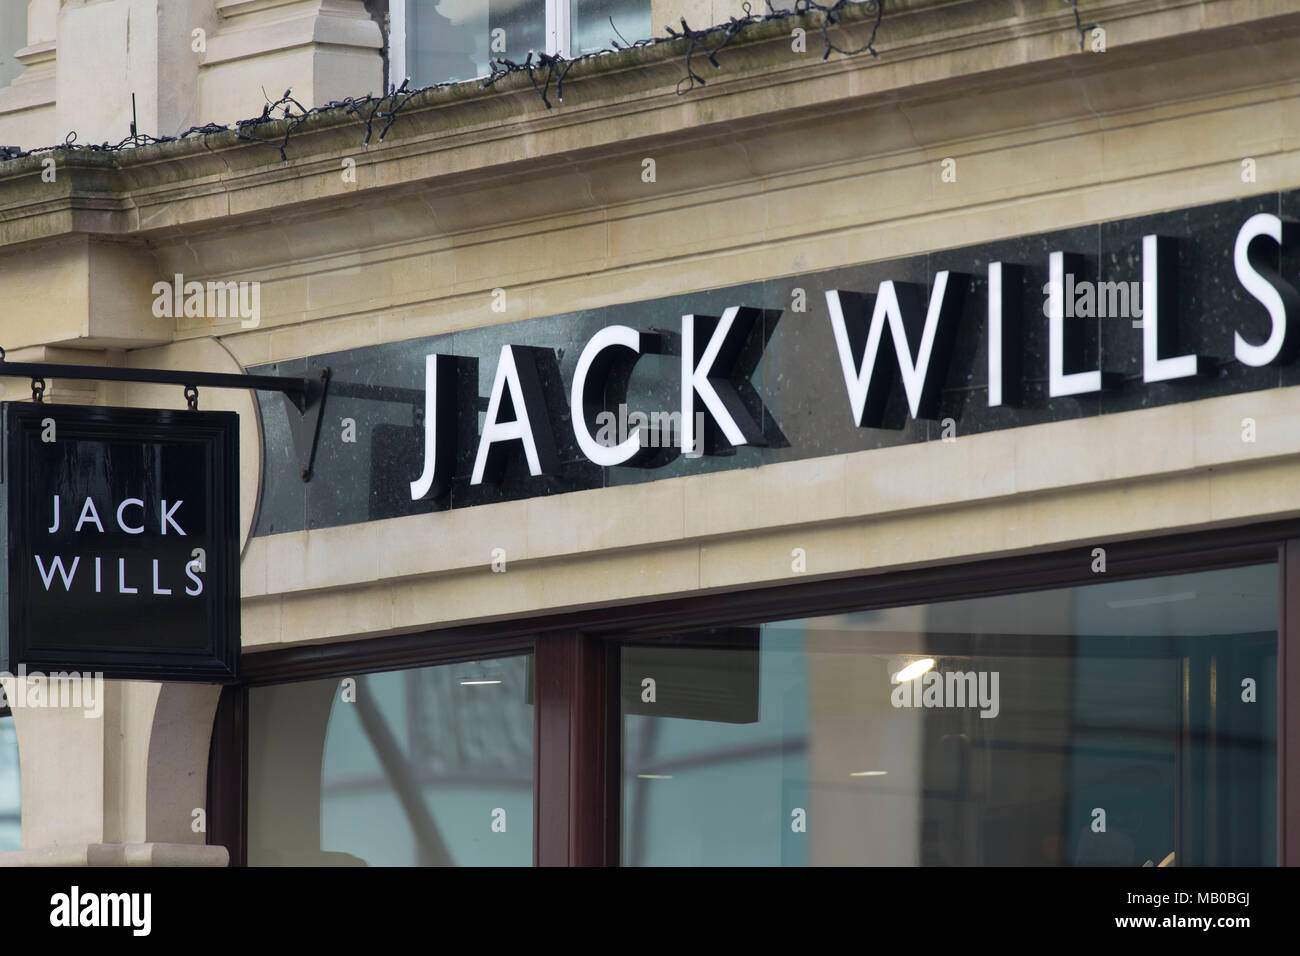 b3a68bfd90 Jack Wills clothing store shop sign logo Stock Photo: 178873986 - Alamy